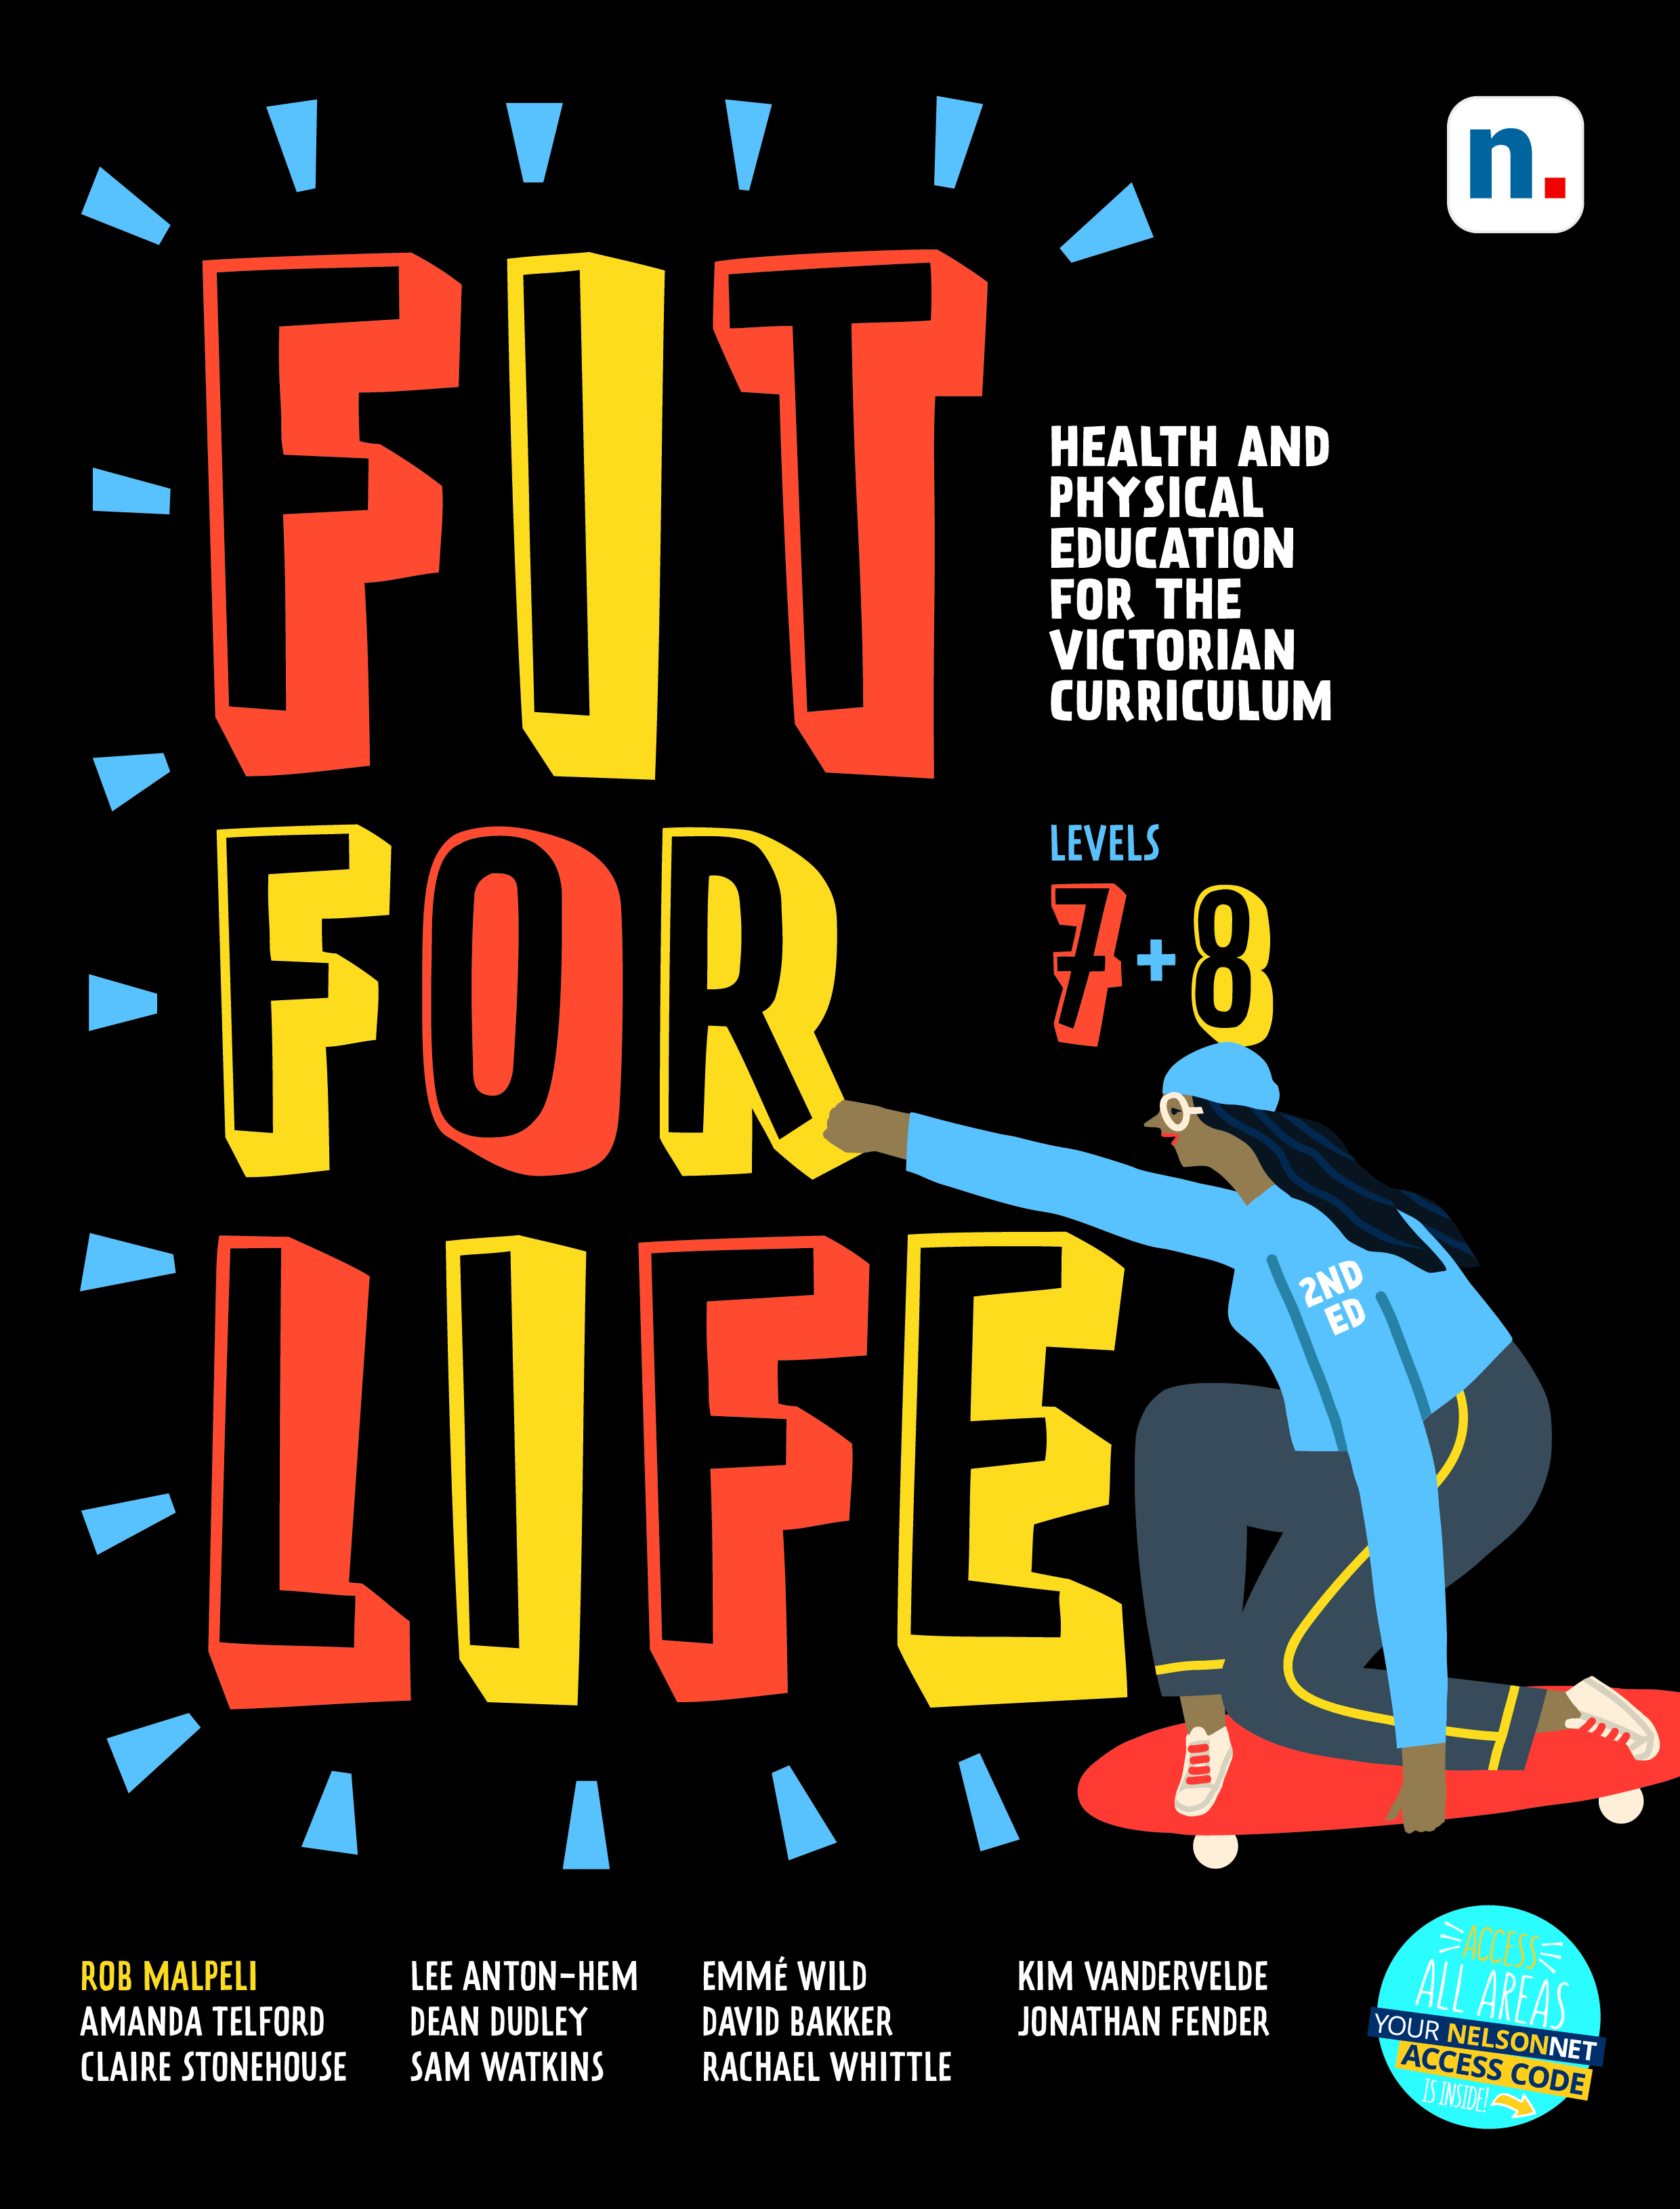 Fit for Life Years 7 & 8 and 9 & 10 for the Victorian Curriculum